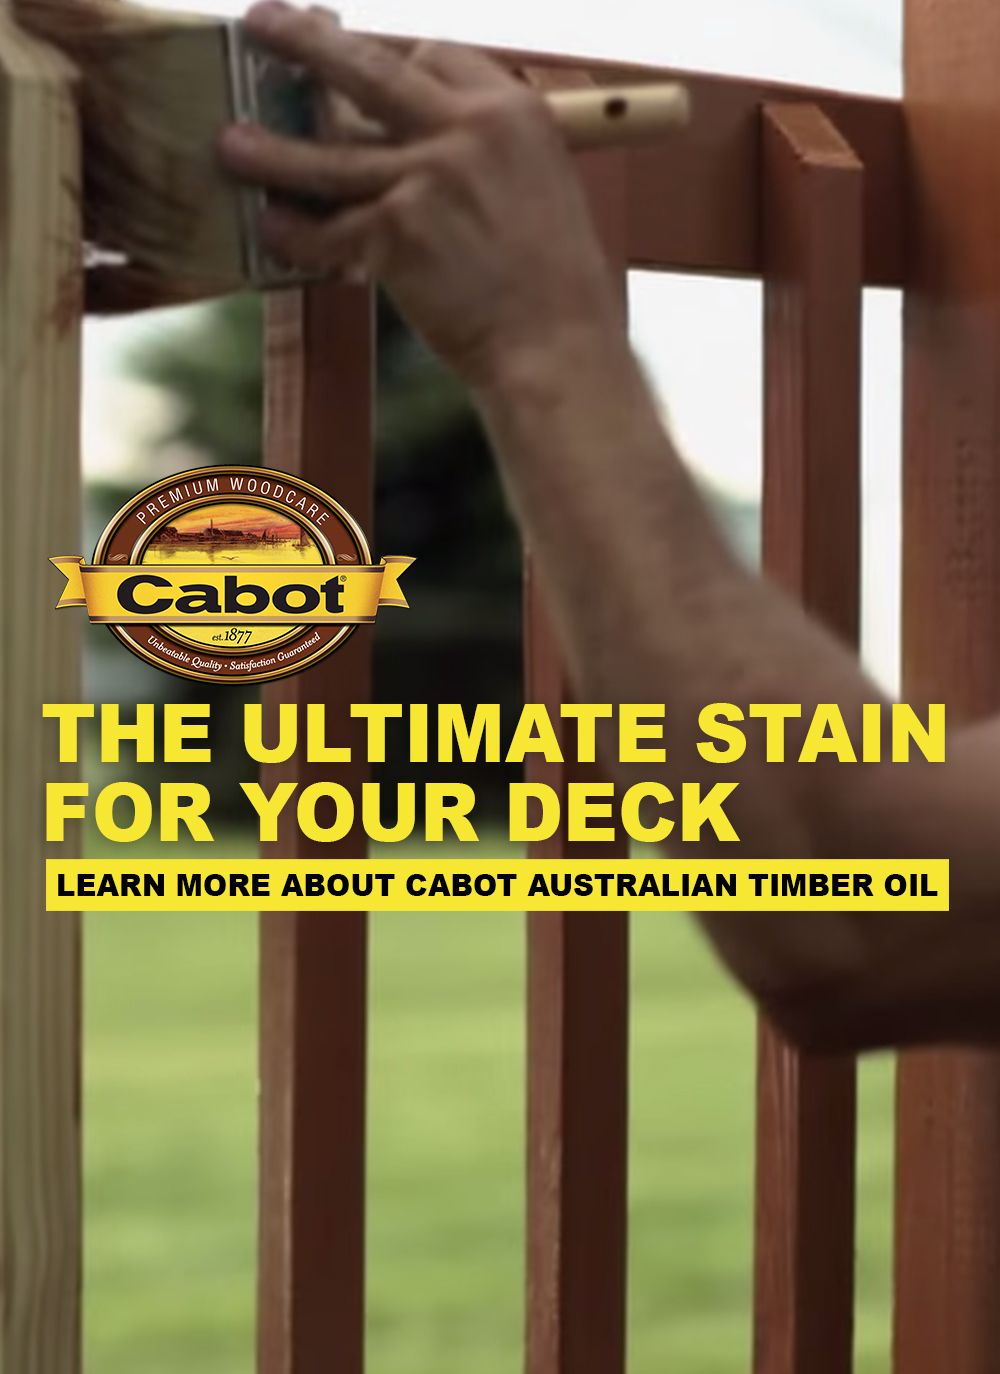 The Only Deck Stain You Ll Ever Need Australian Timber Oil Is Cabot S Finest Wood Stain The Triple Oil Cabot Australian Timber Oil Staining Deck Cabot Stain